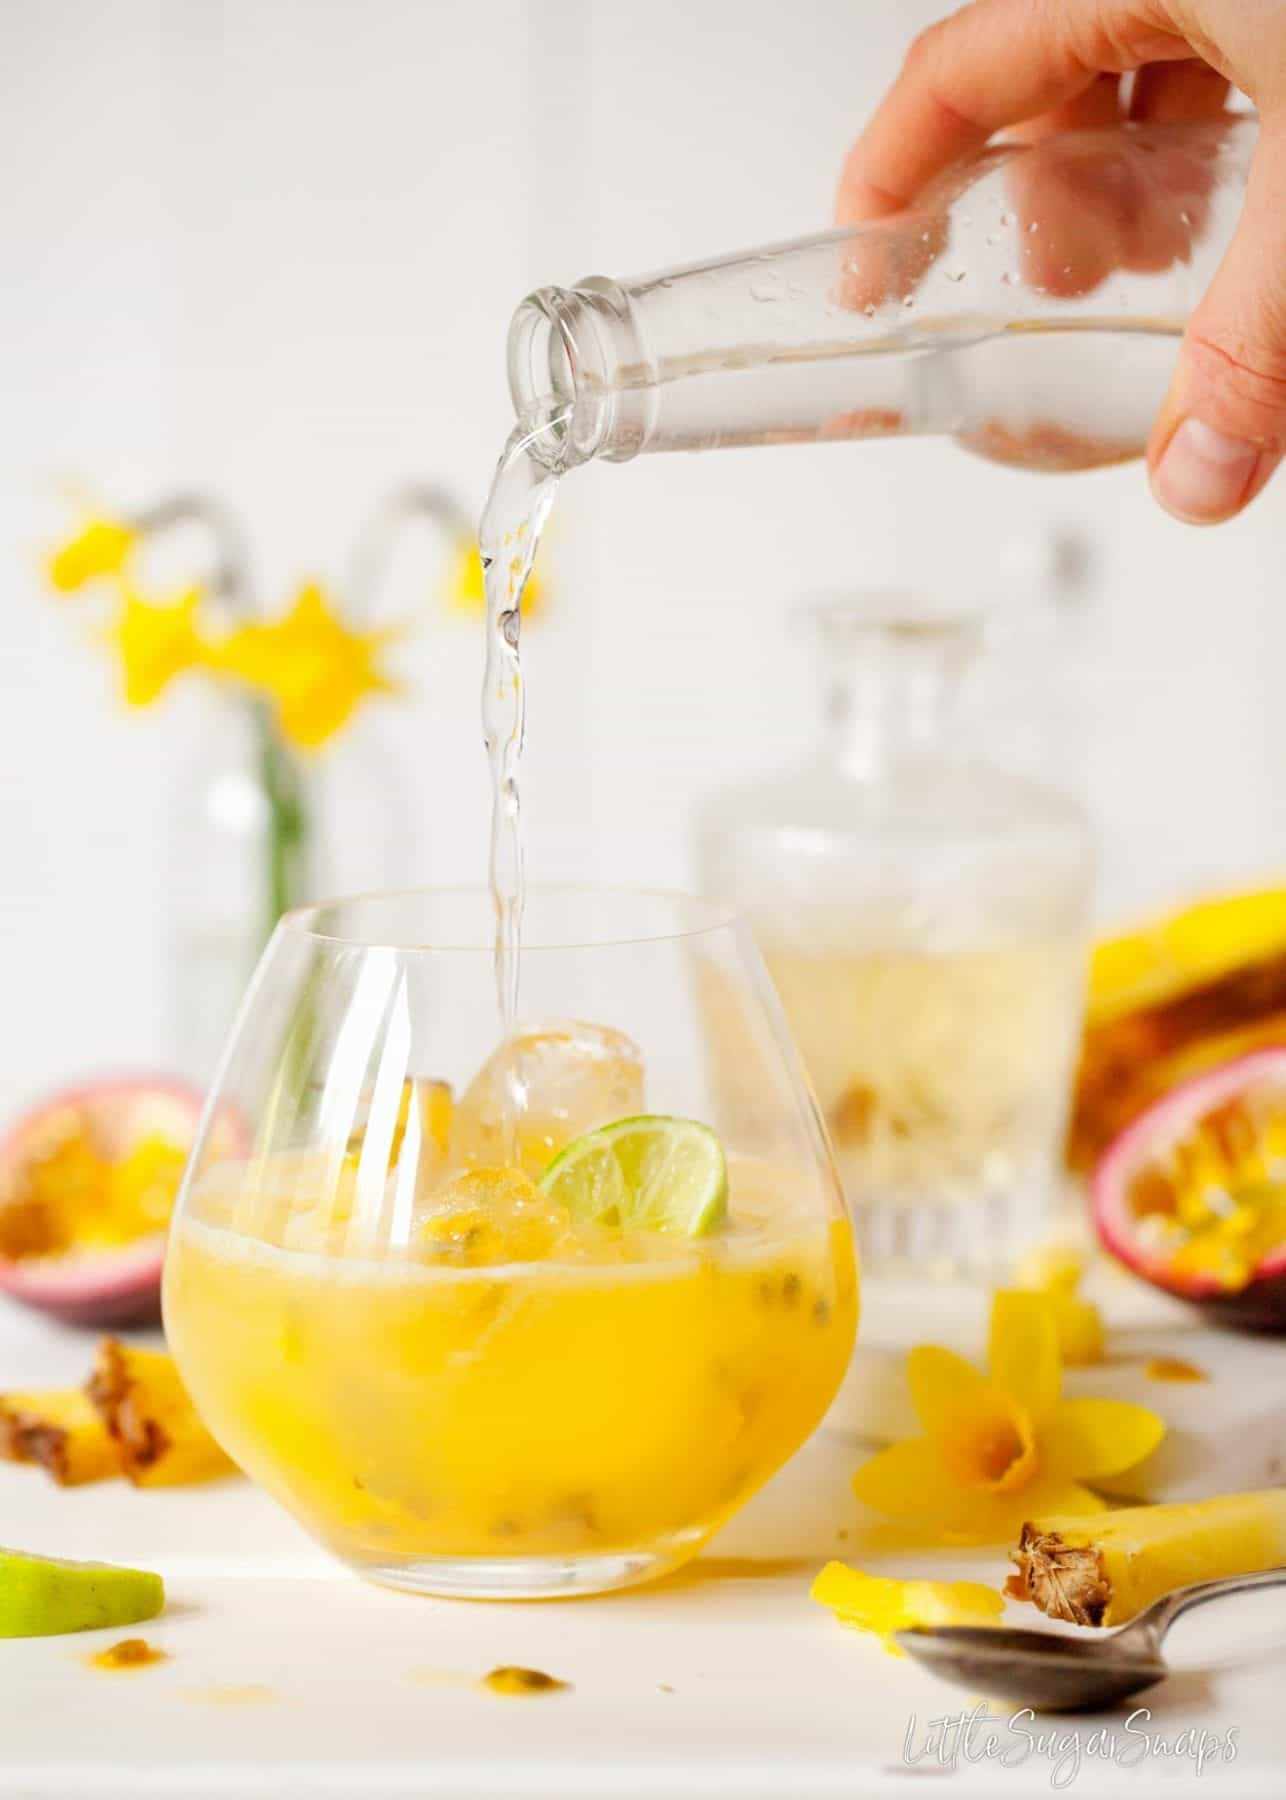 Passionfruit and Pineapple Spring Gin & Tonic being poured.